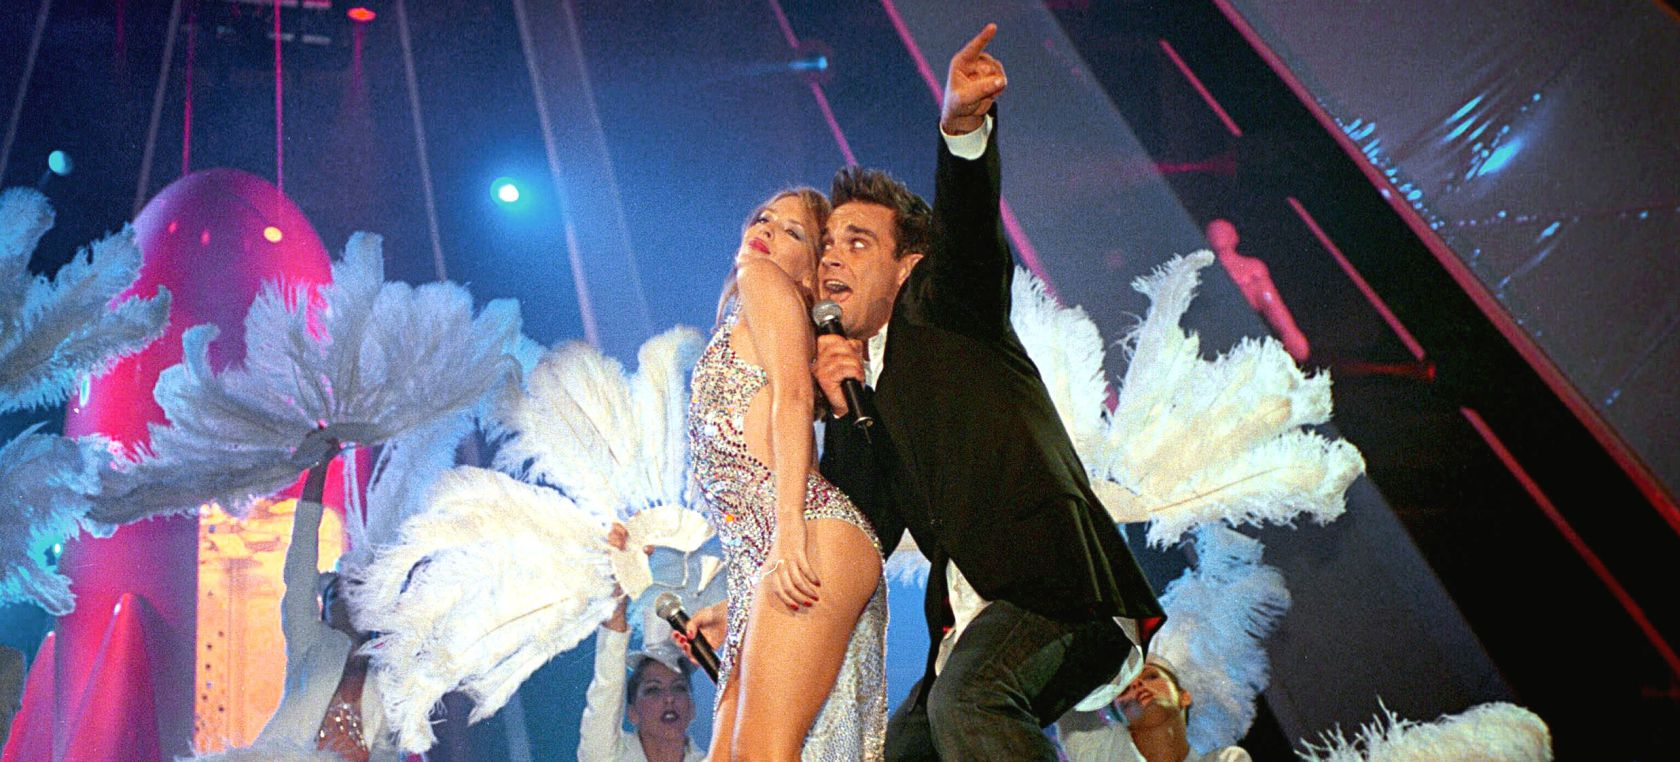 Robbie Williams confirma un nuevo dúo con Kylie Minogue